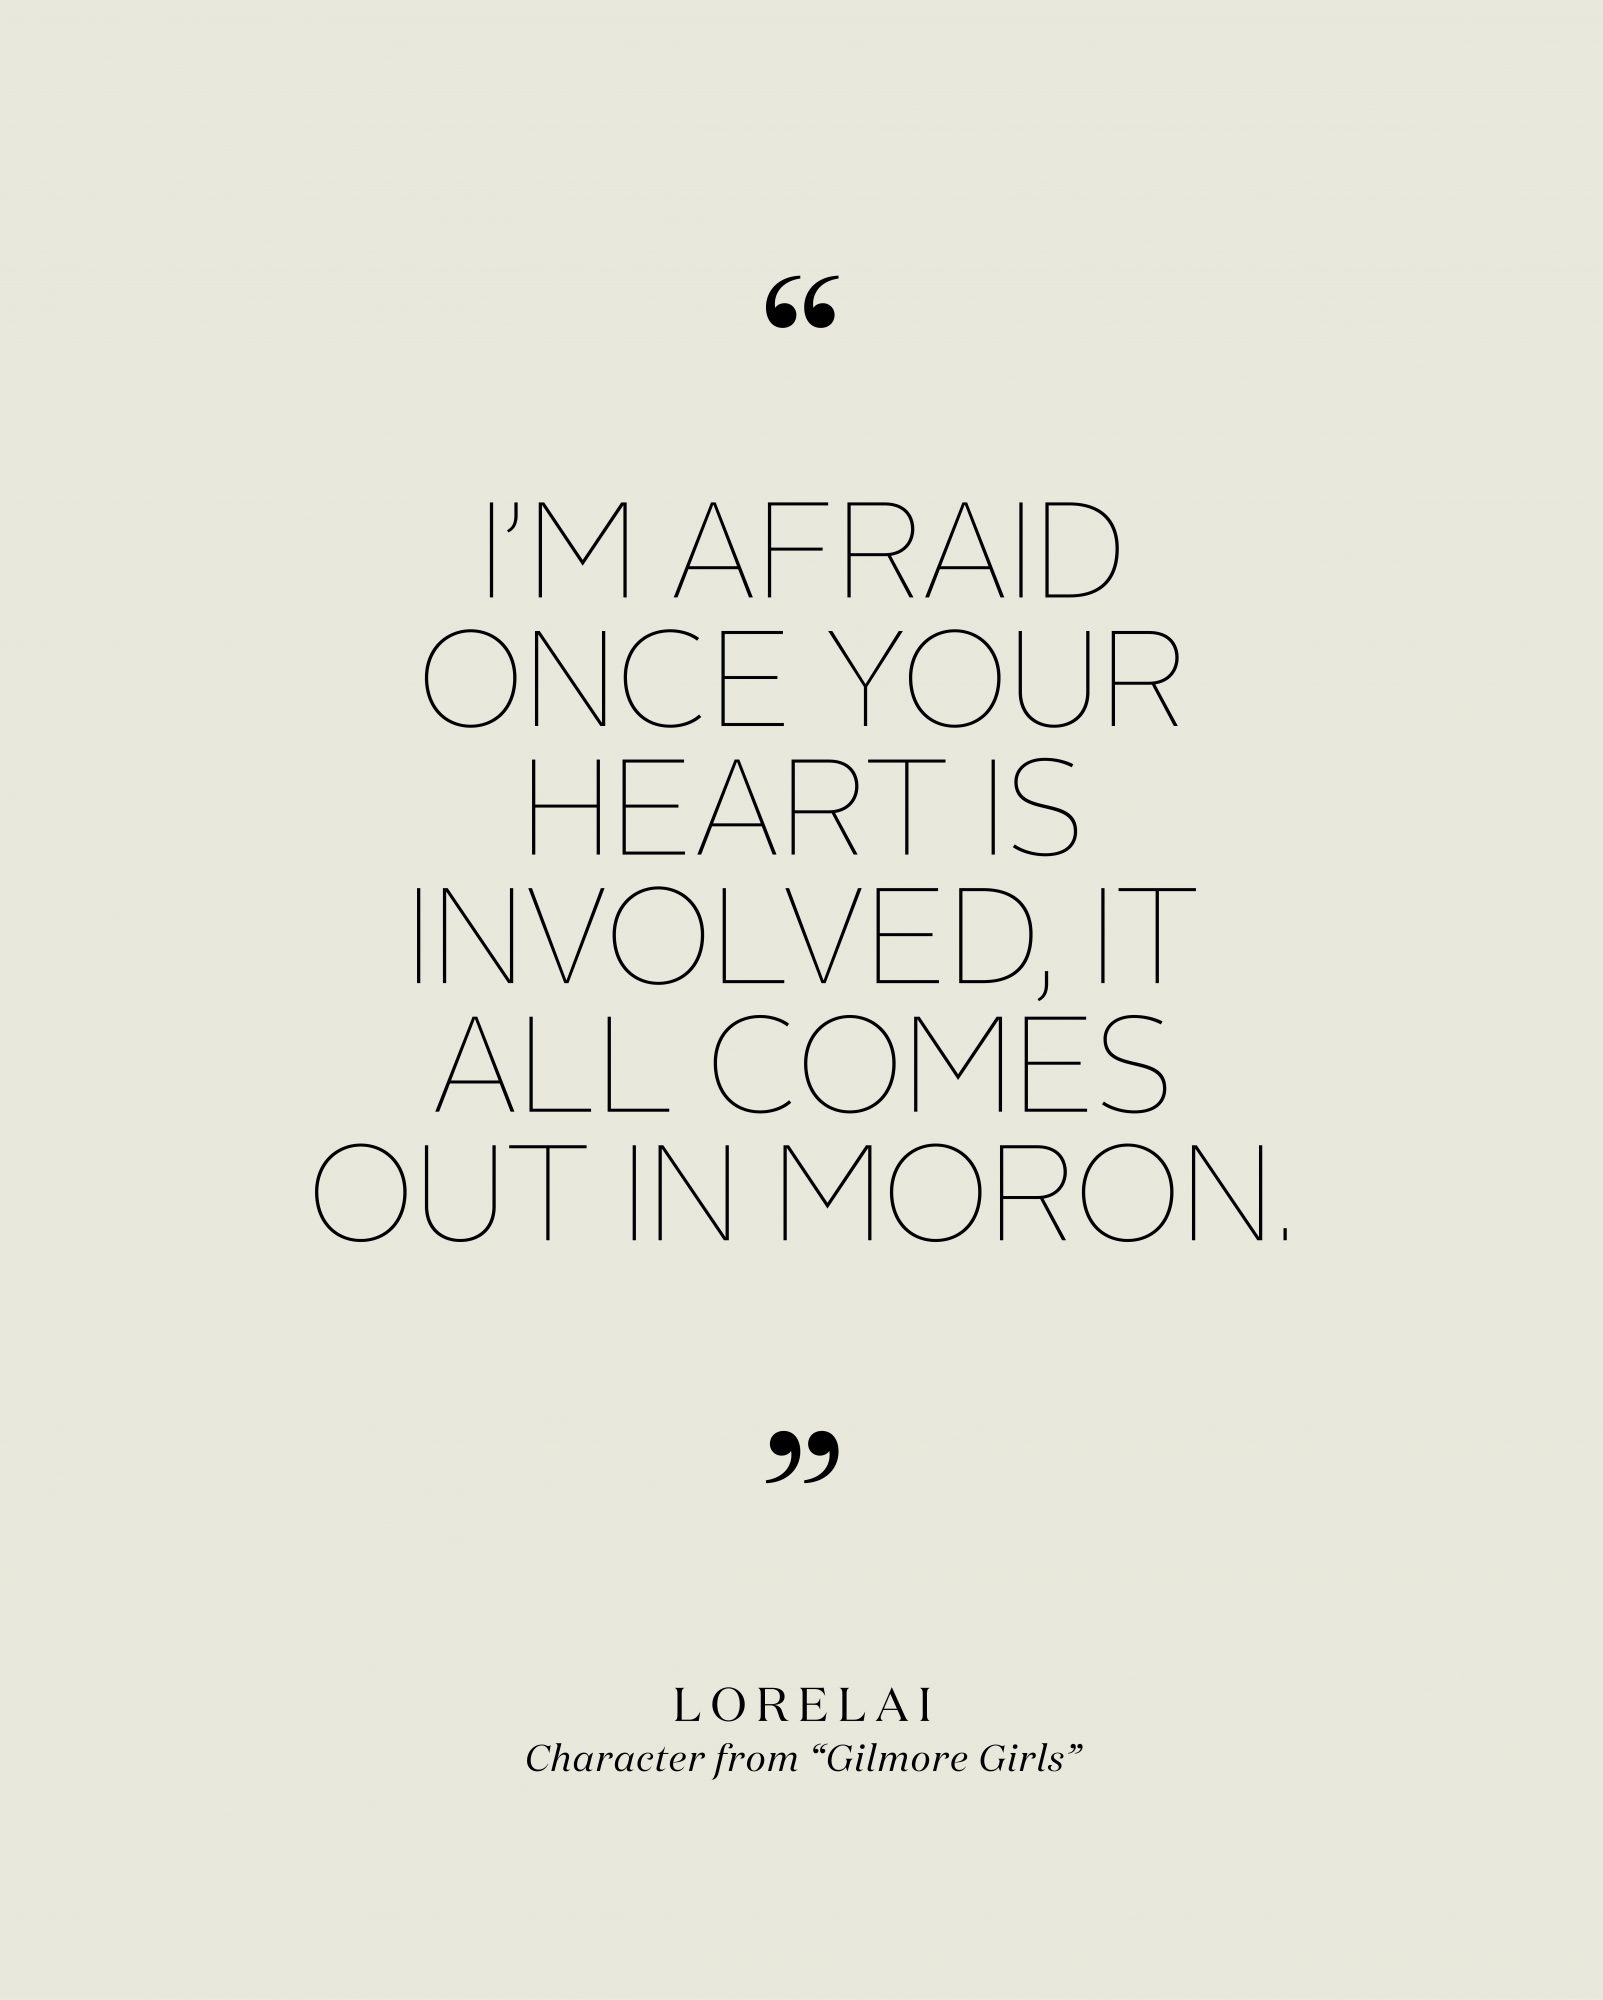 love-quotes-lorelai-gilmore-girls-0715.jpg